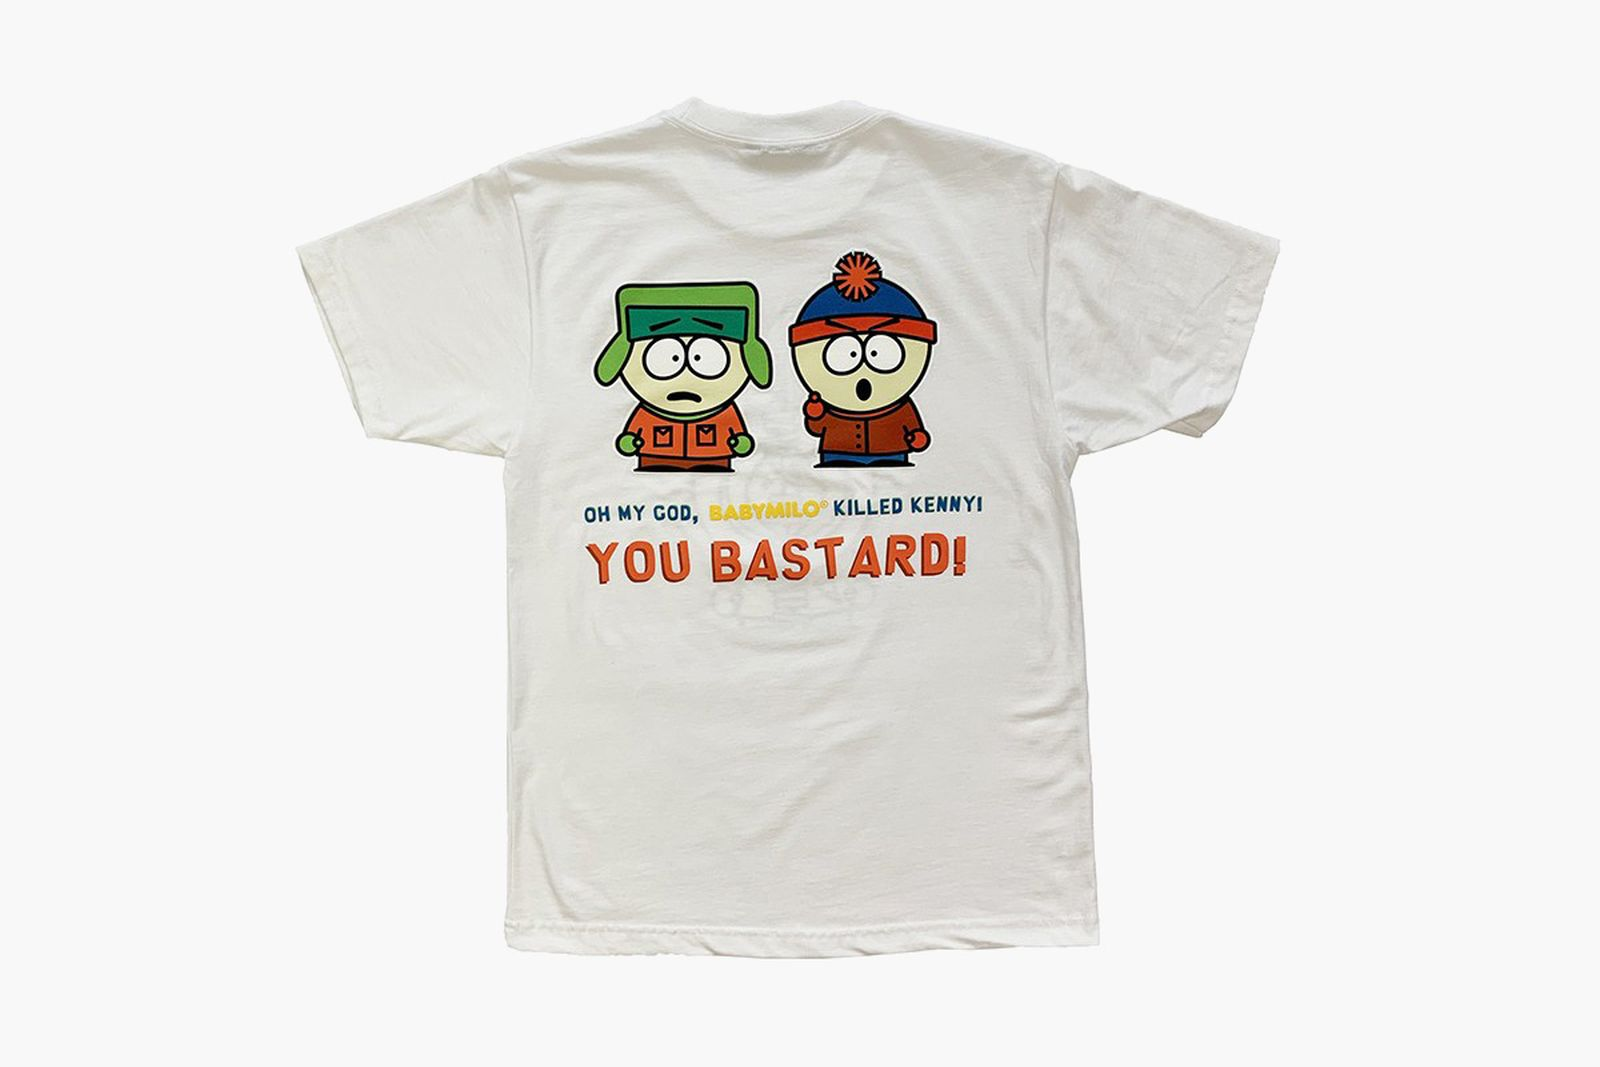 bape-south-park-t-shirt-01